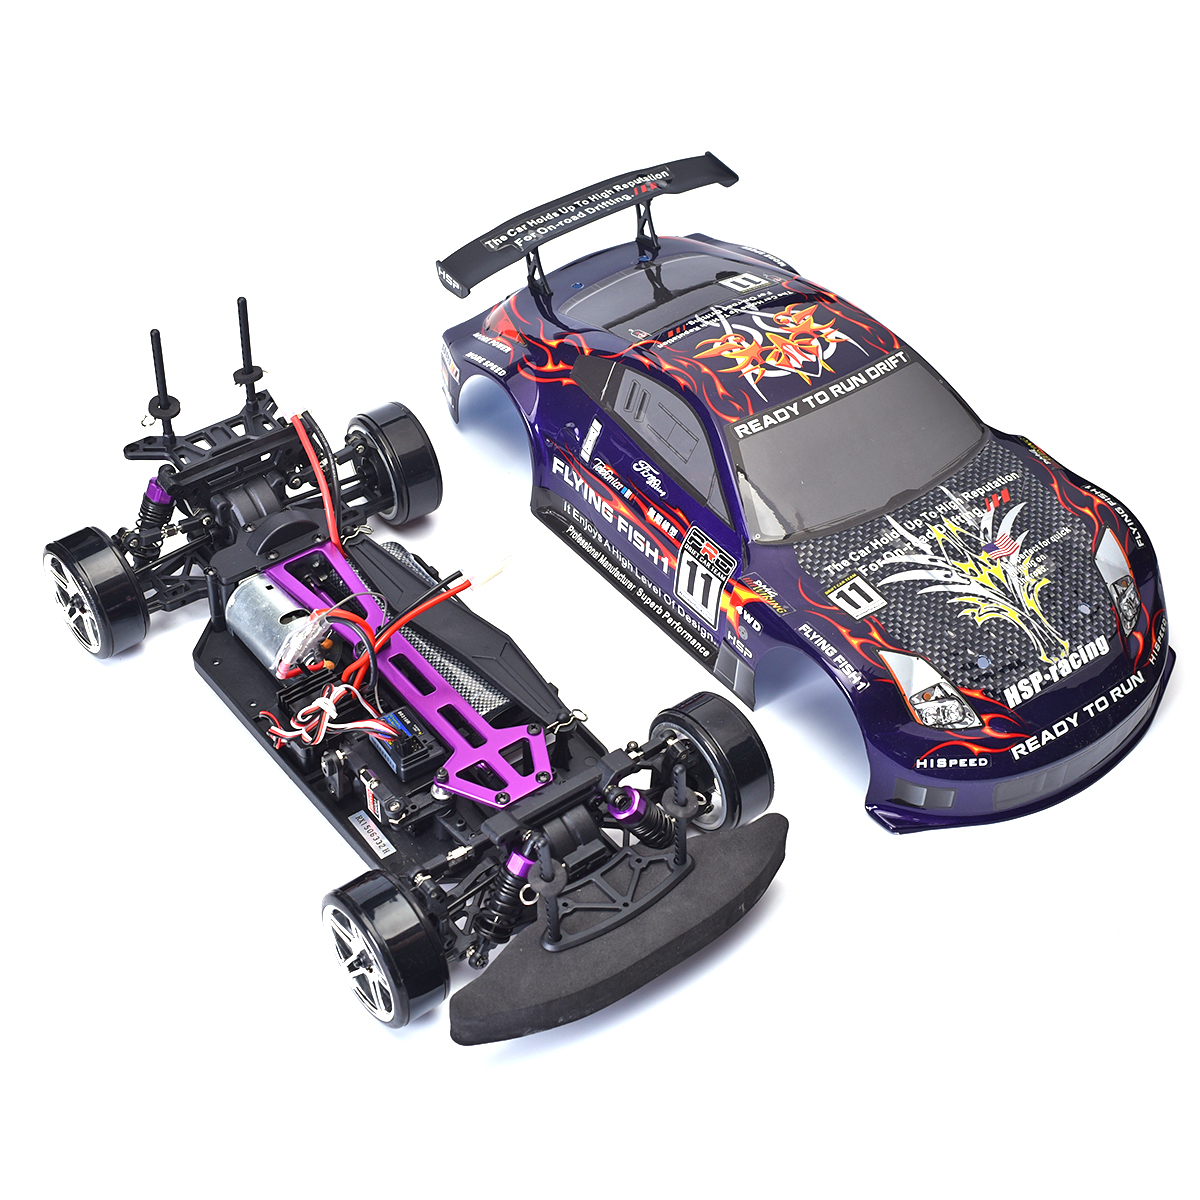 Rc Cars That Run On Gas For Sale